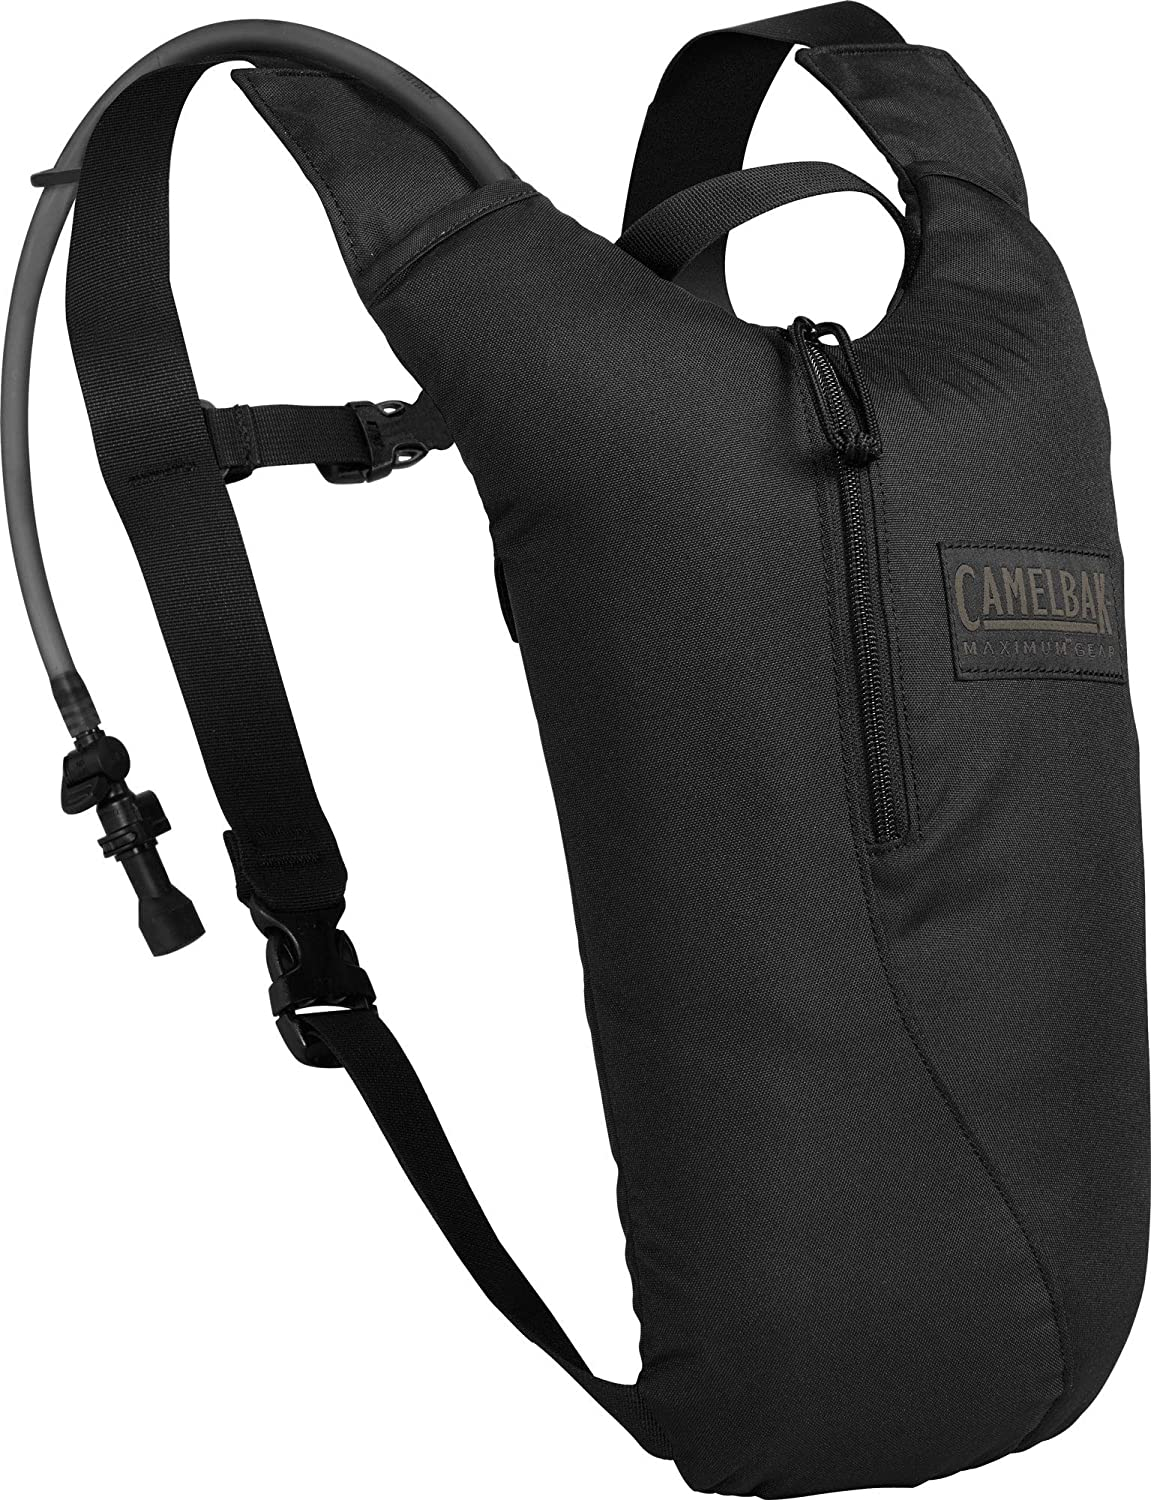 CamelBak Sabre, Black, with 85oz (2.5L) Mil-Spec Crux Reservoir